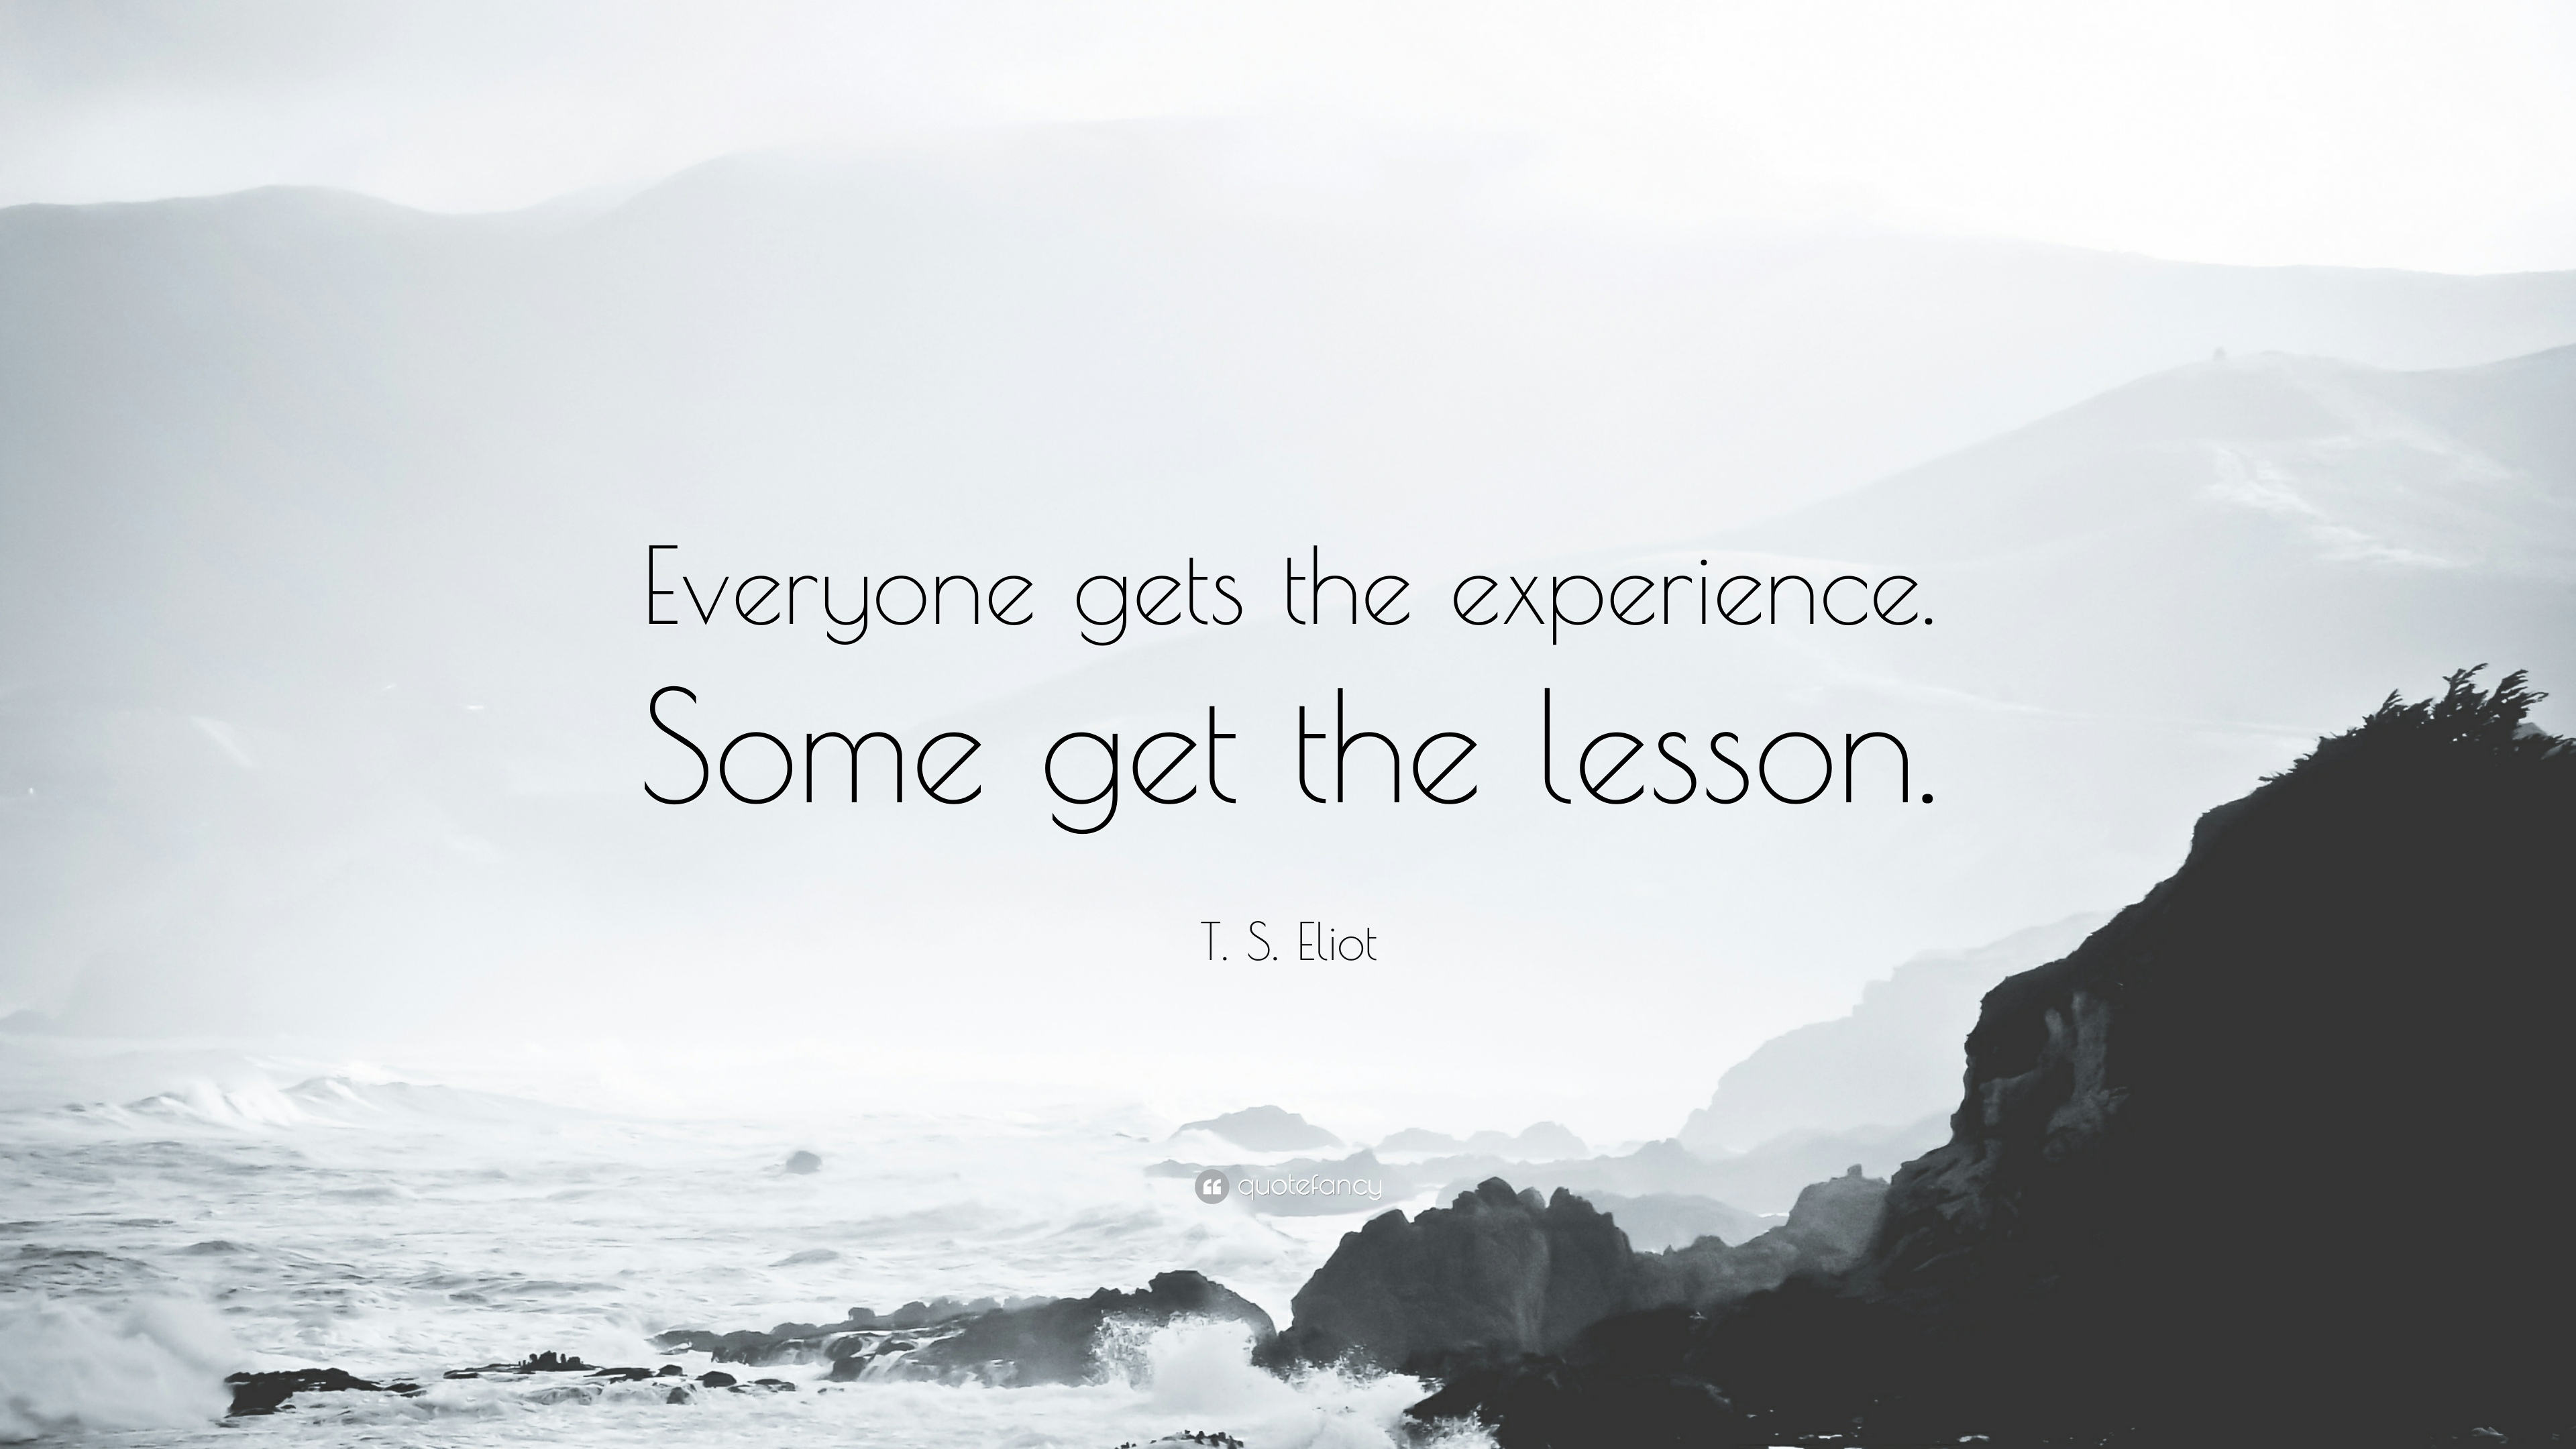 t s eliot quote everyone gets the experience some get the